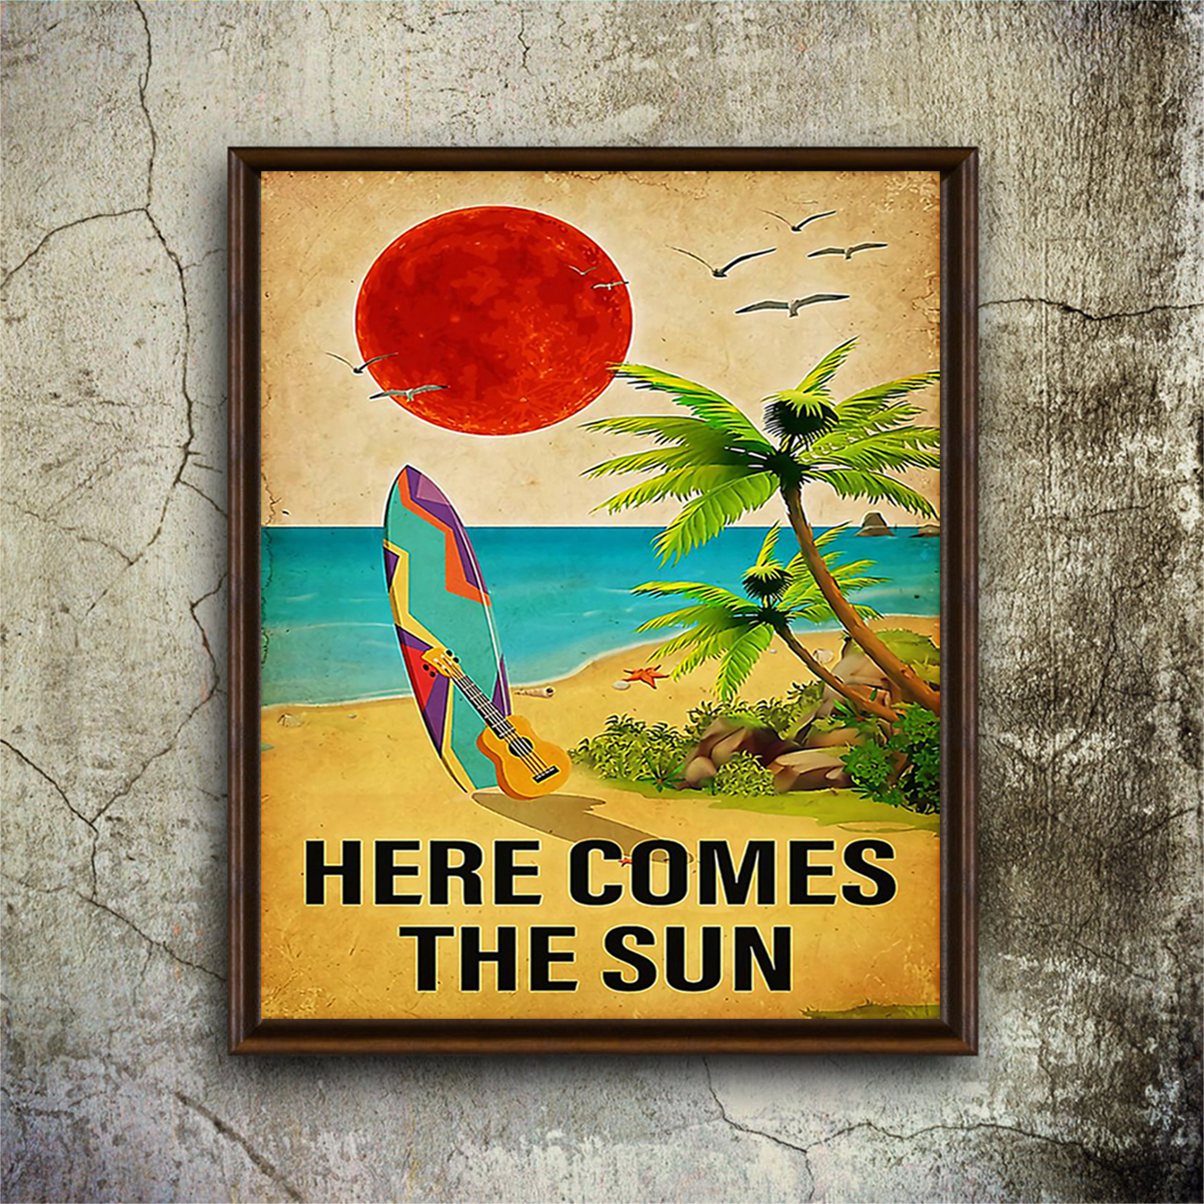 Surfing here comes the sun poster A1